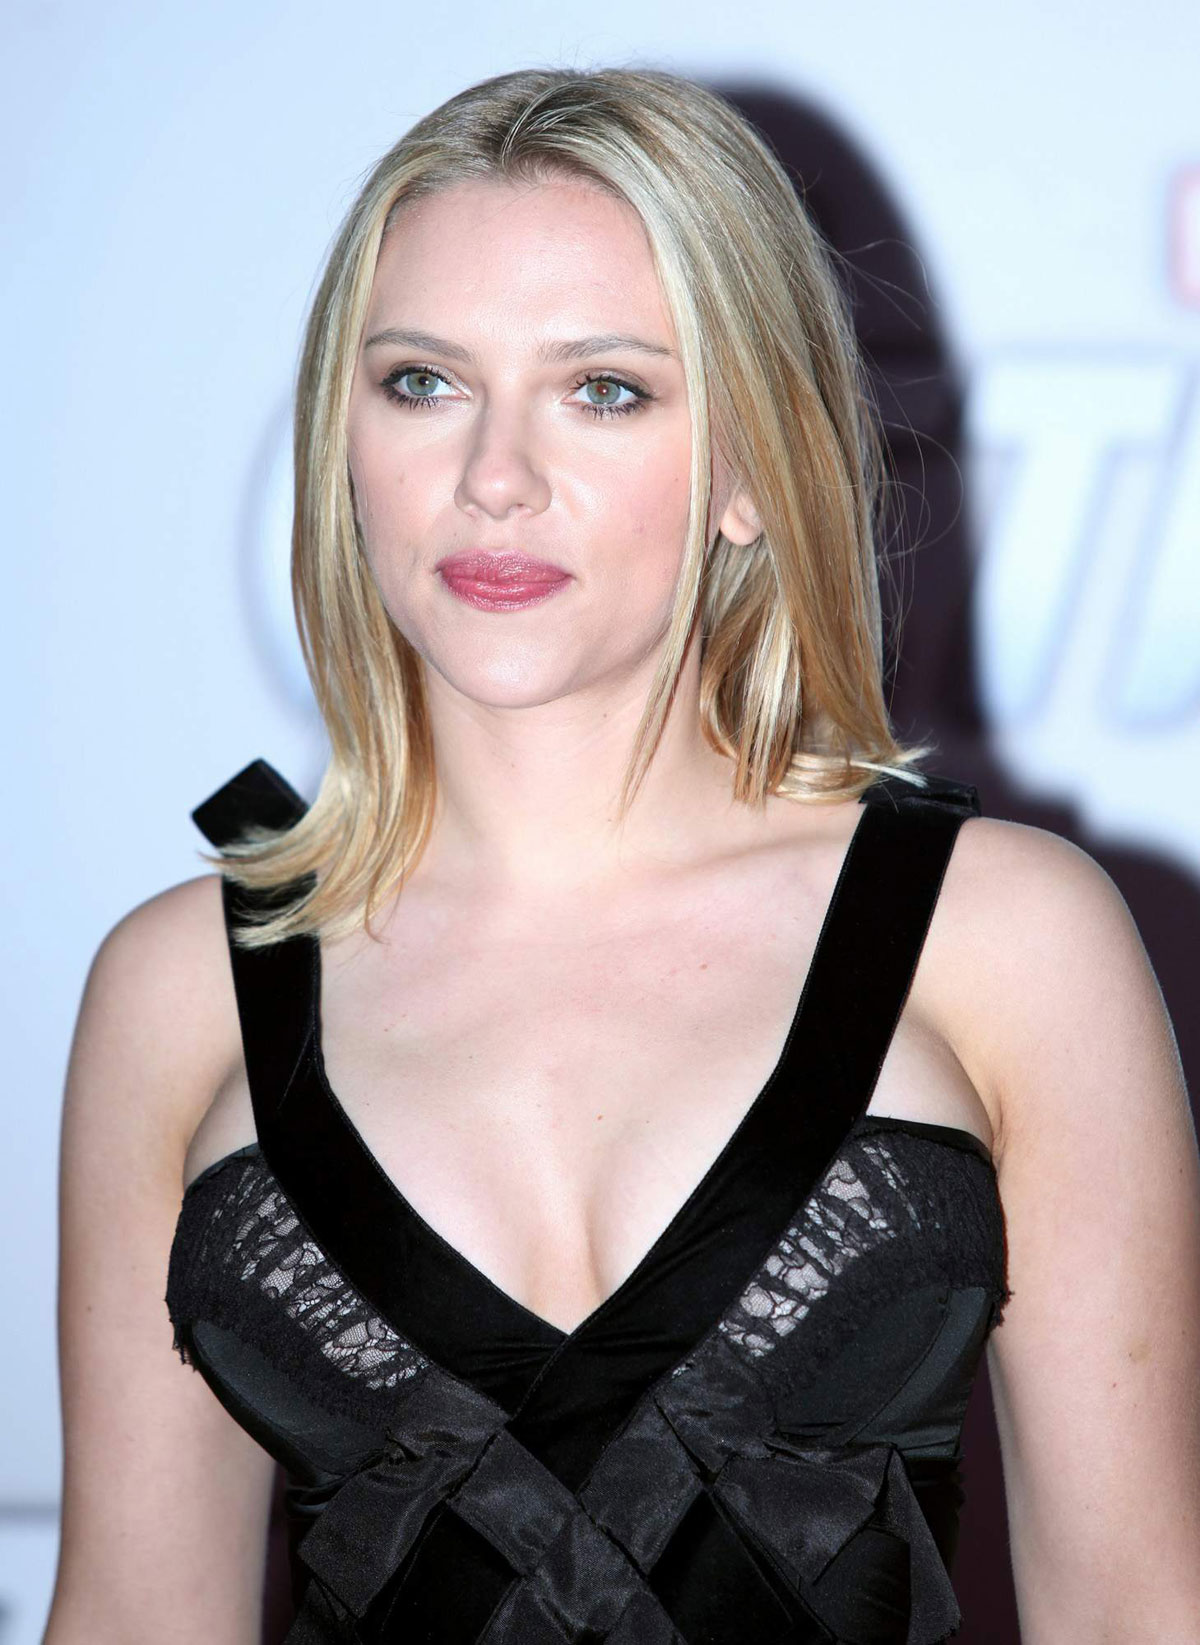 SCARLETT JOHANSSON at The Avengers Premiere in Moscow